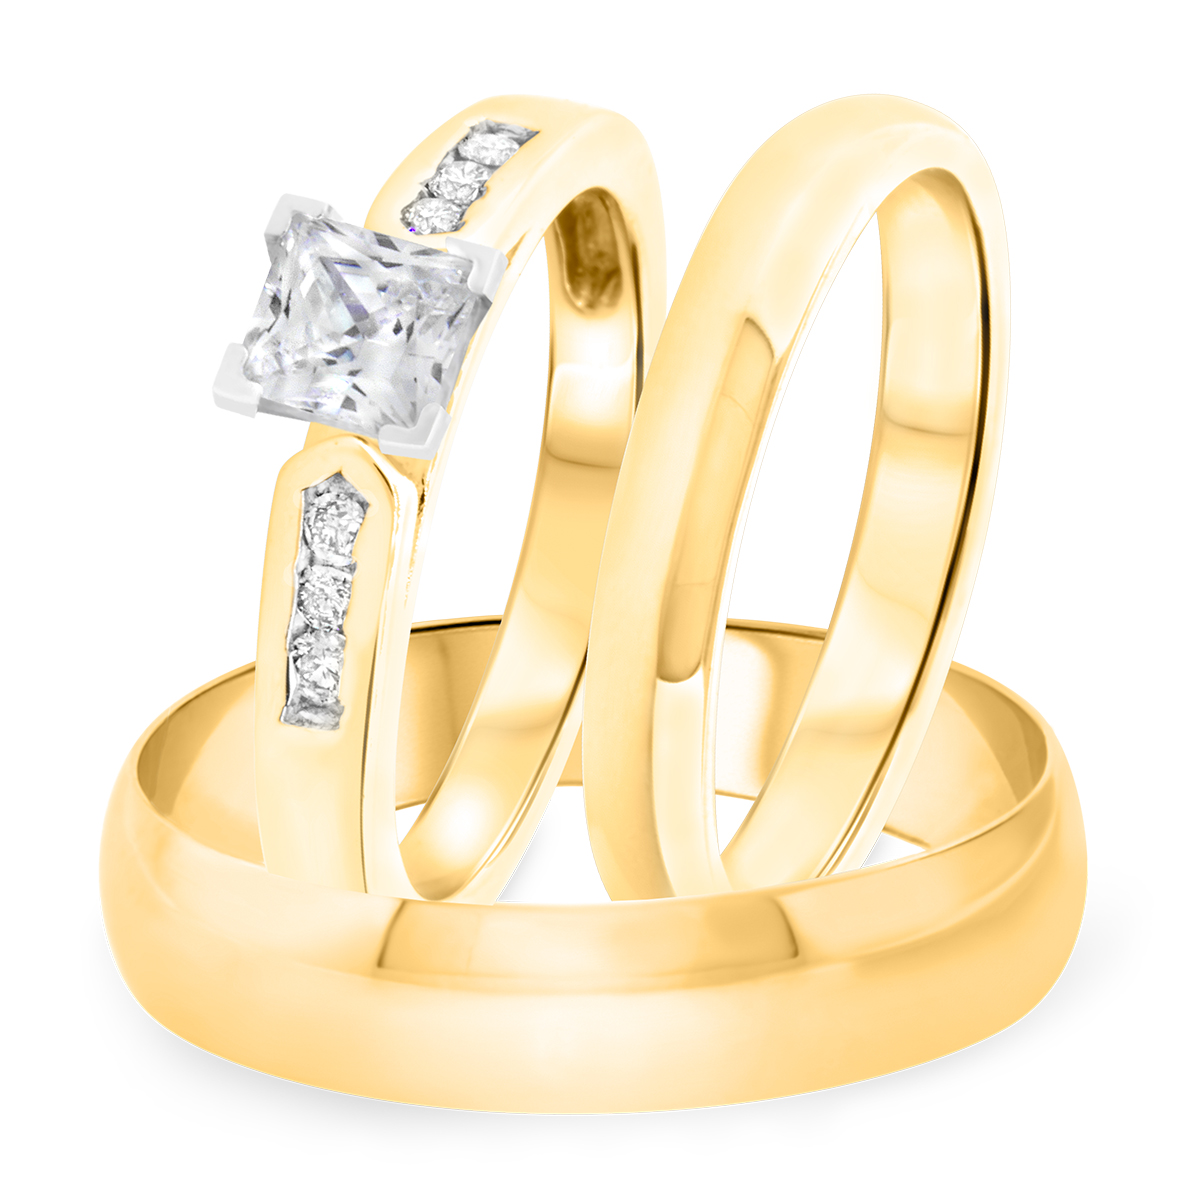 1 1/8 CT. T.W. Diamond Ladies Engagement Ring, Wedding Band, Men's Wedding Band Matching Set 10K Yellow Gold